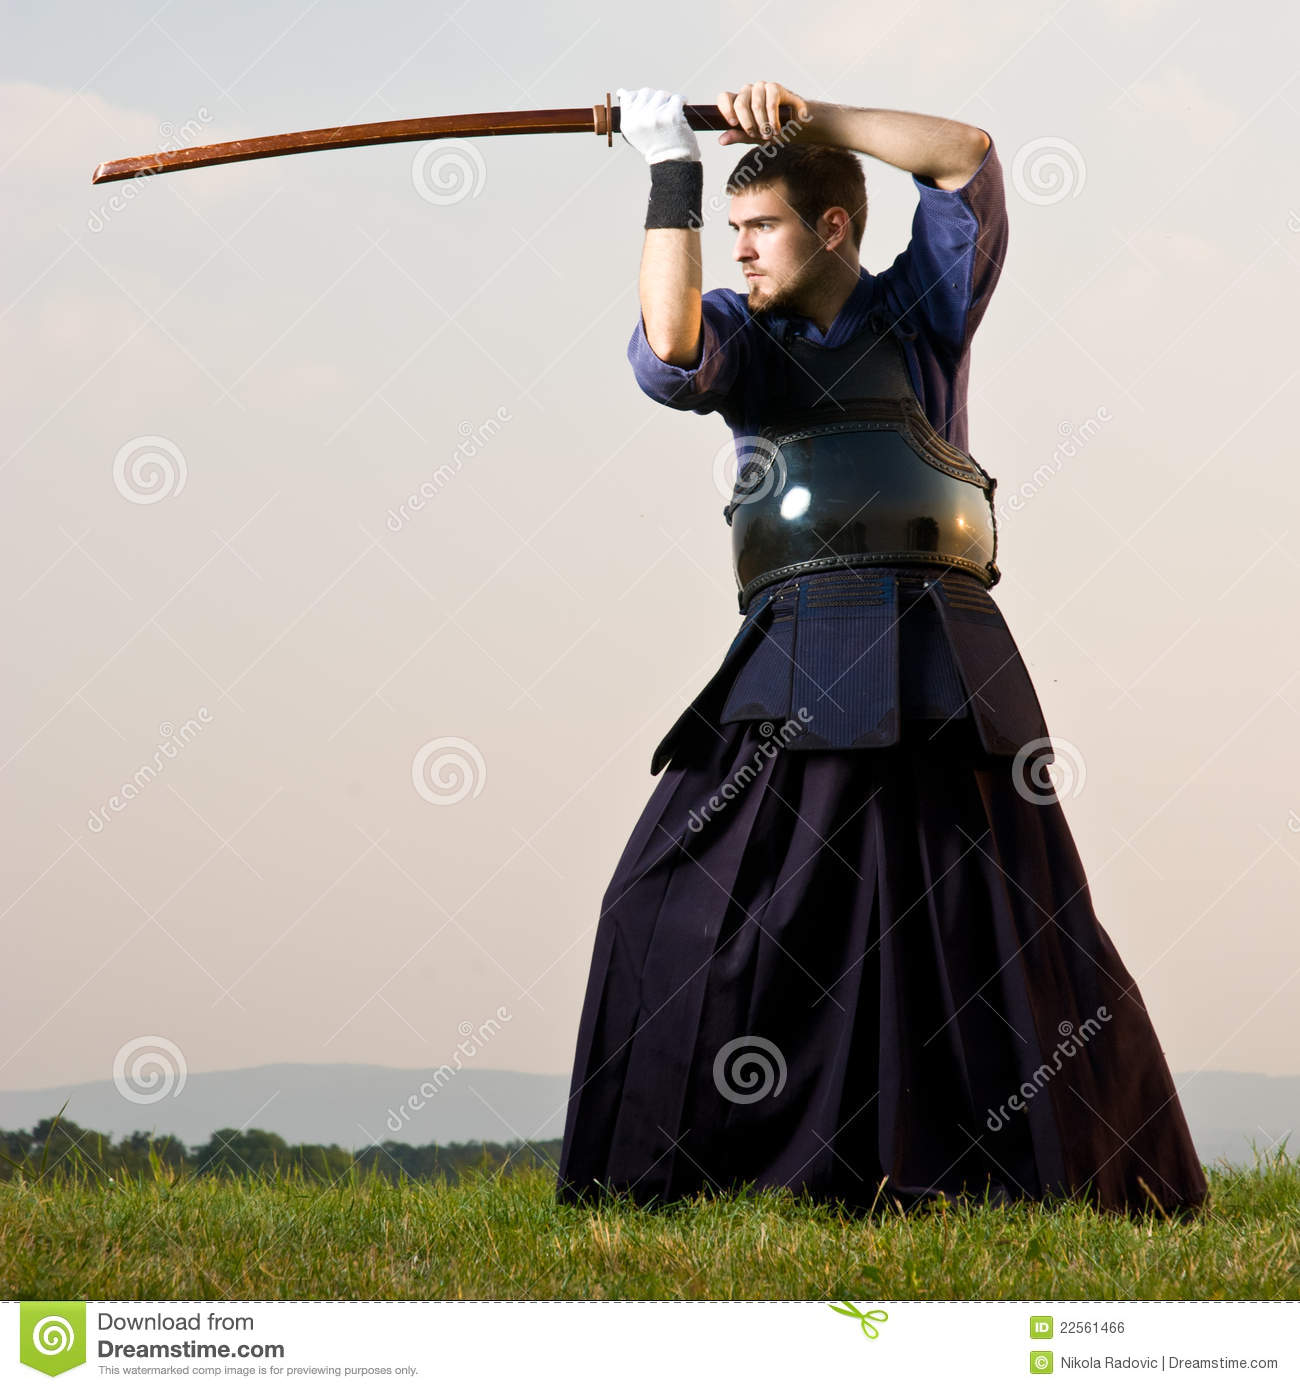 Kendo Expert Royalty Free Stock Image - Image: 22561466